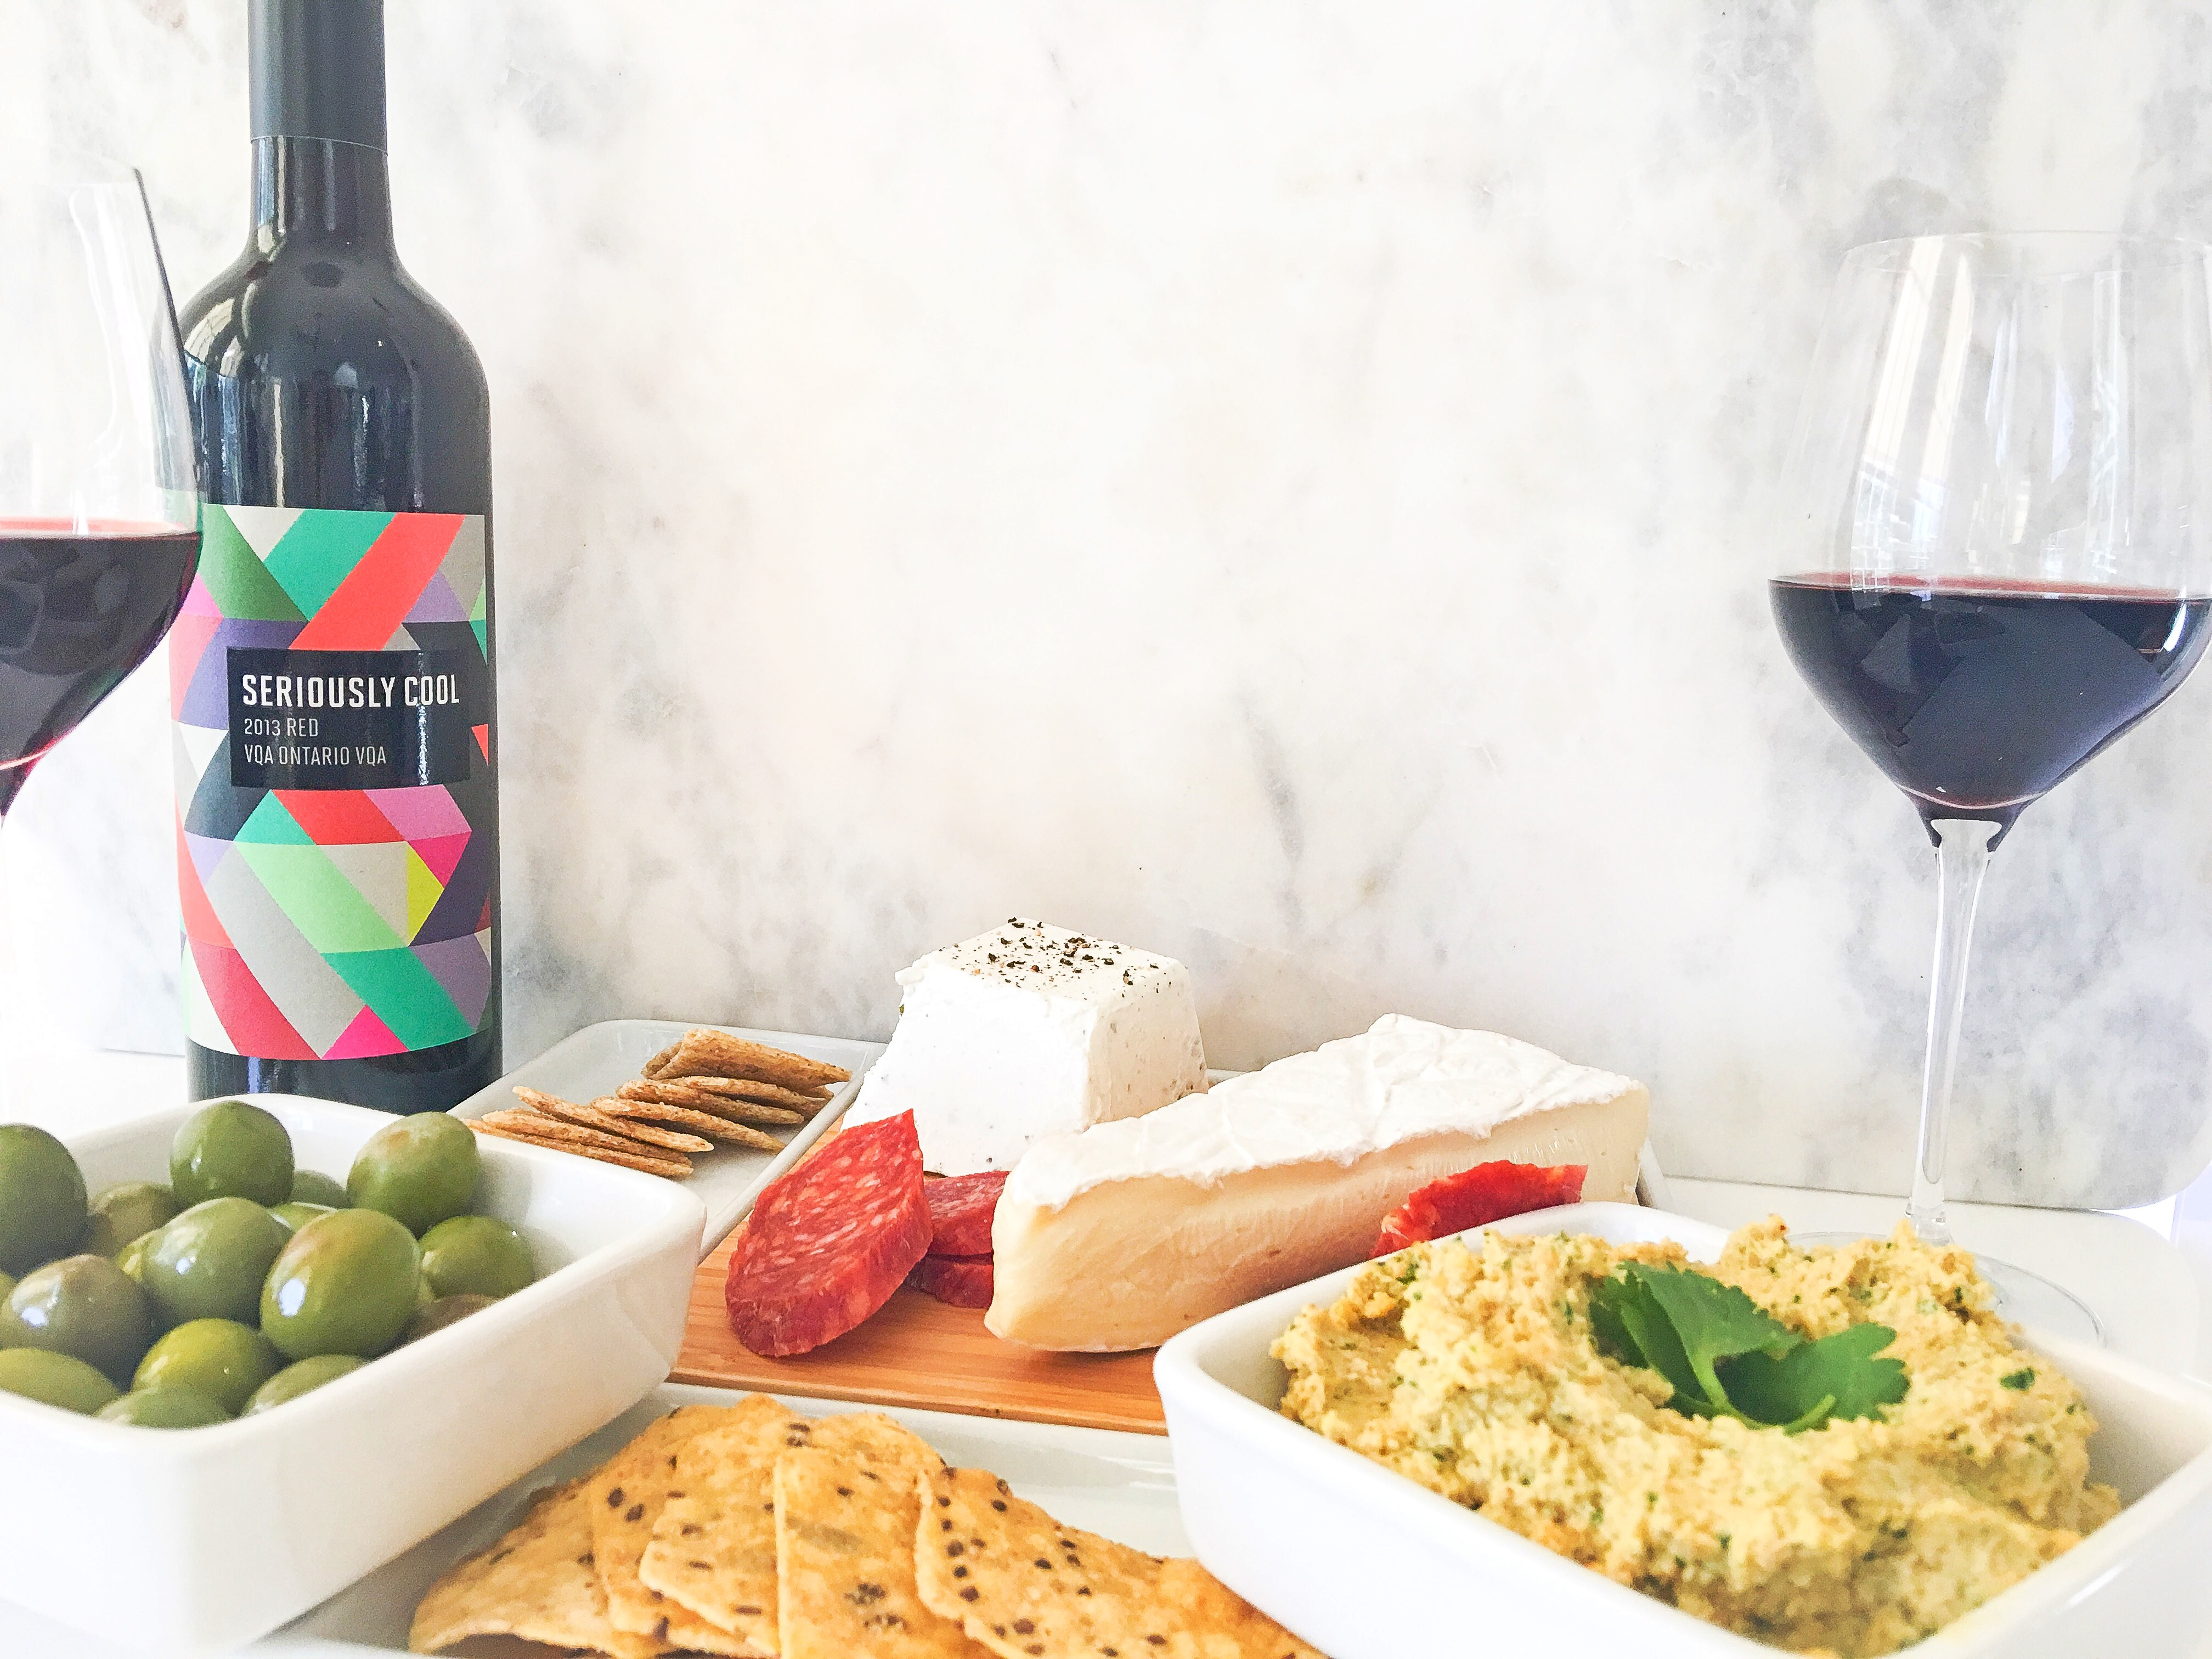 What to Serve with Seriously Cool Wine?